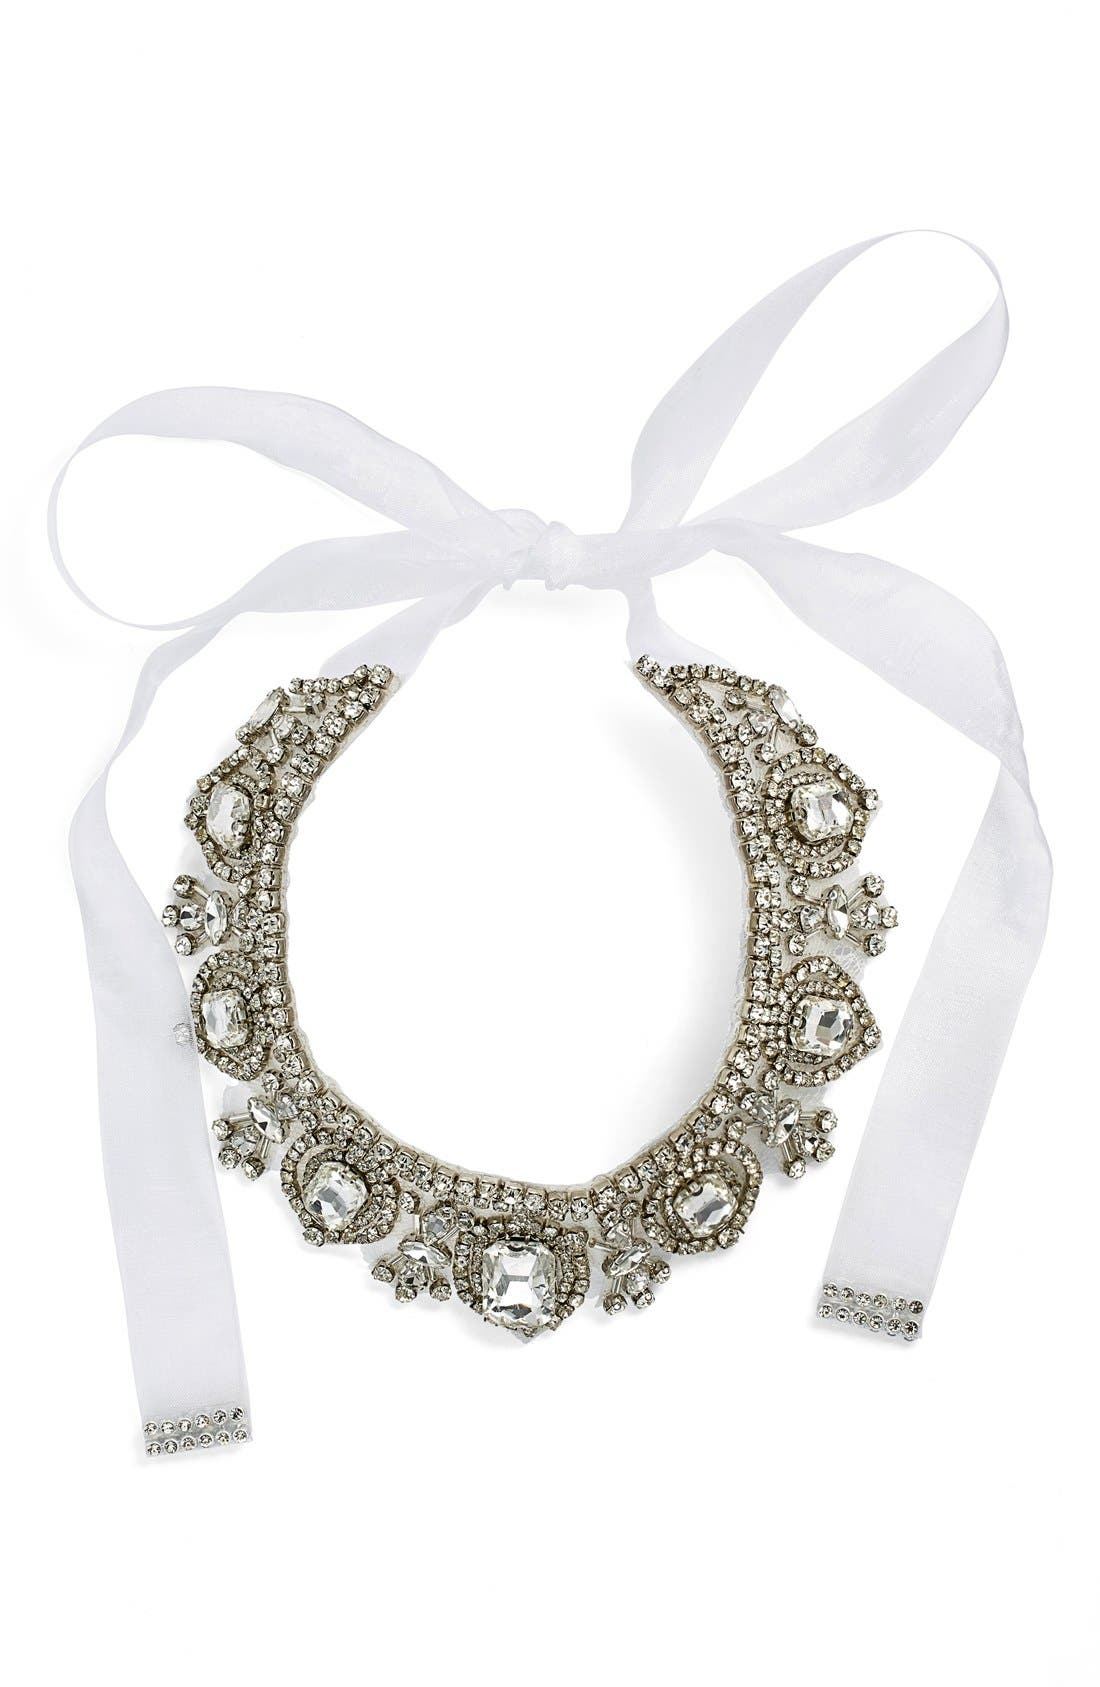 Alternate Image 1 Selected - Nina 'Glamorous' Tie Collar Necklace